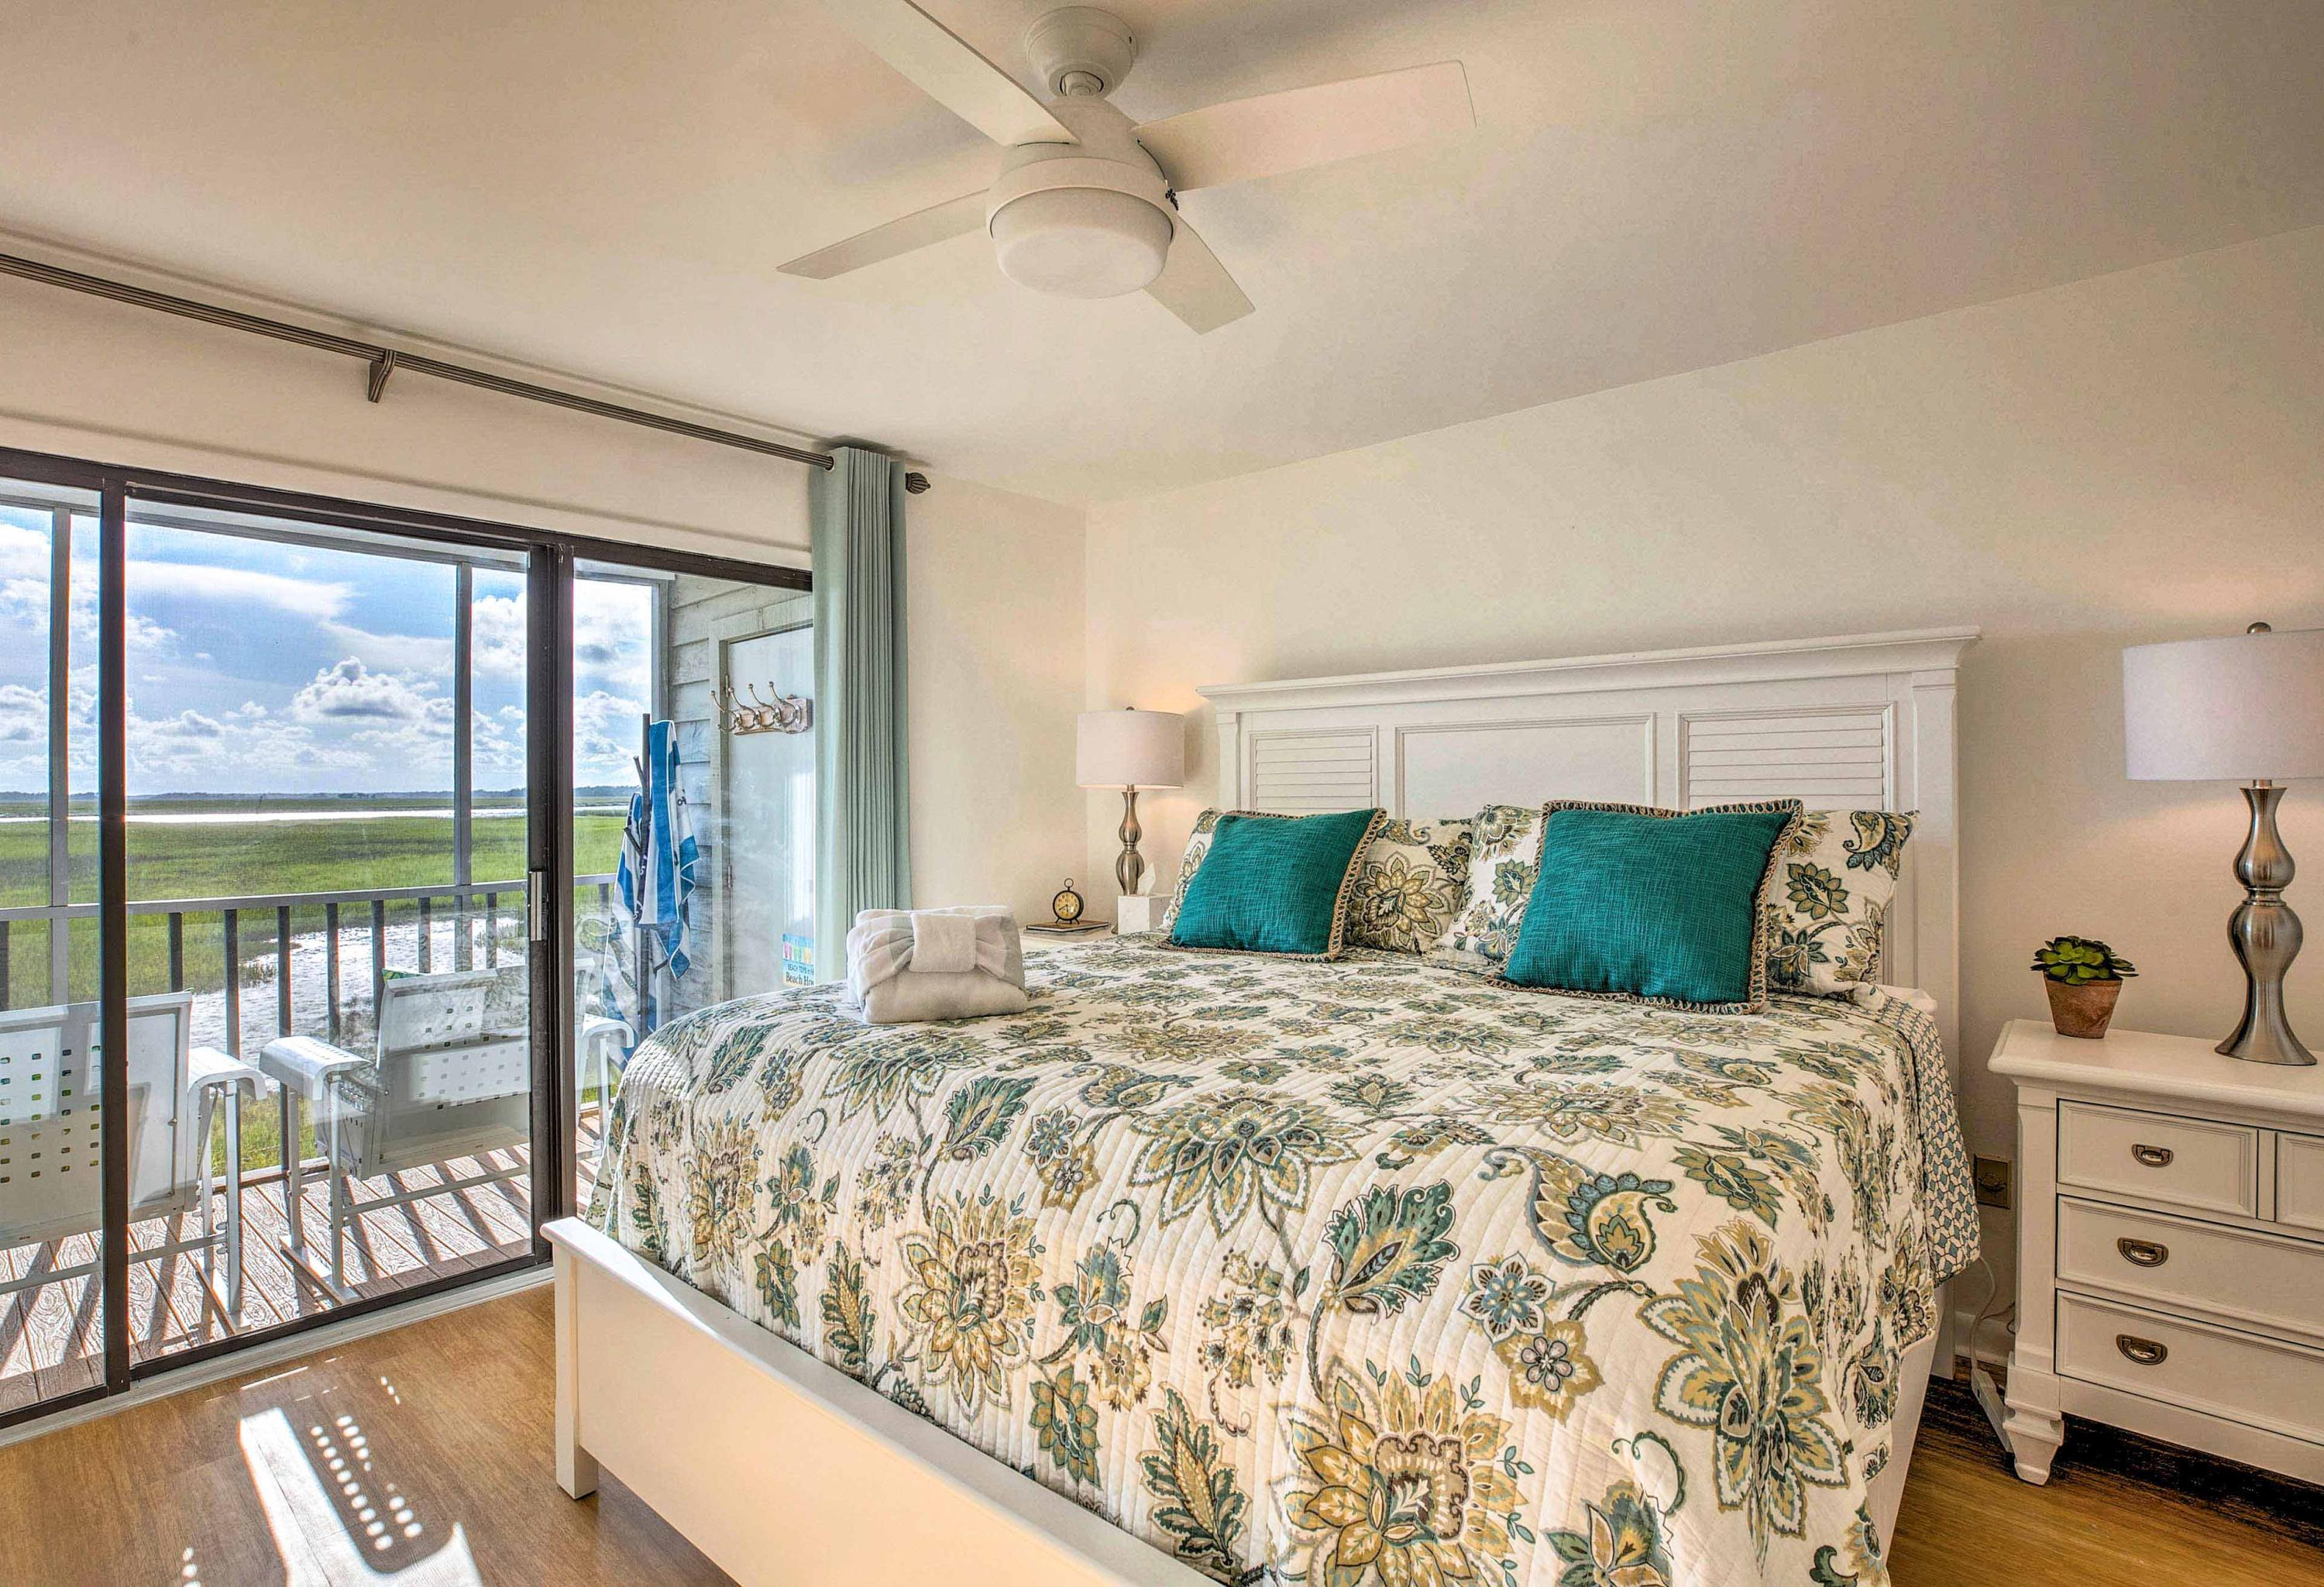 Mariners Cay Homes For Sale - 93 Mariners Cay, Folly Beach, SC - 22